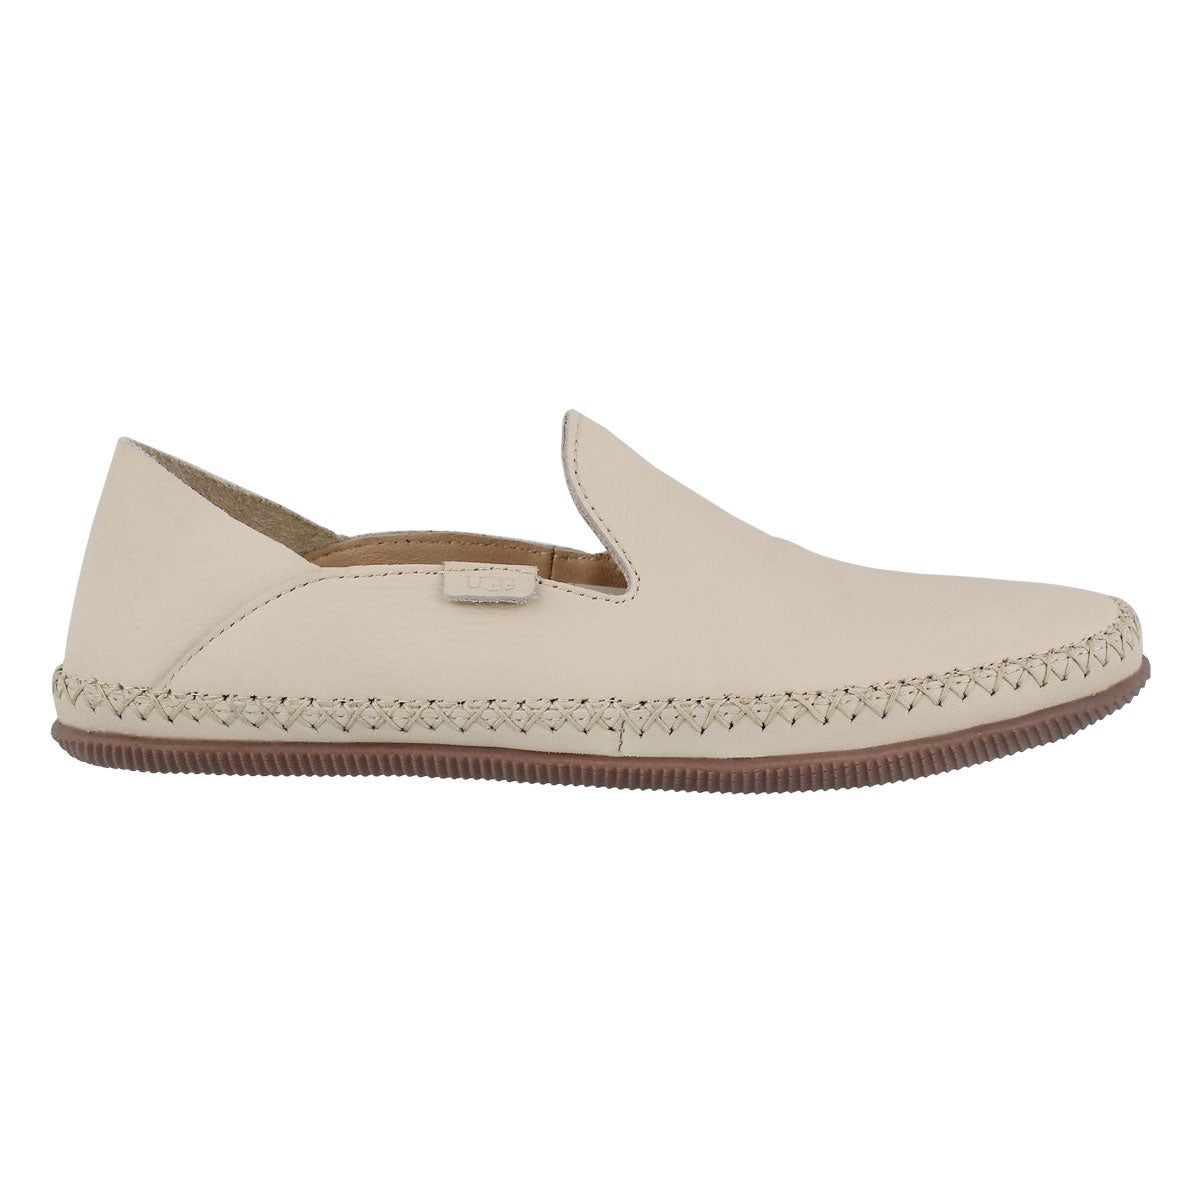 Lds Elodie cream casual slip on shoe